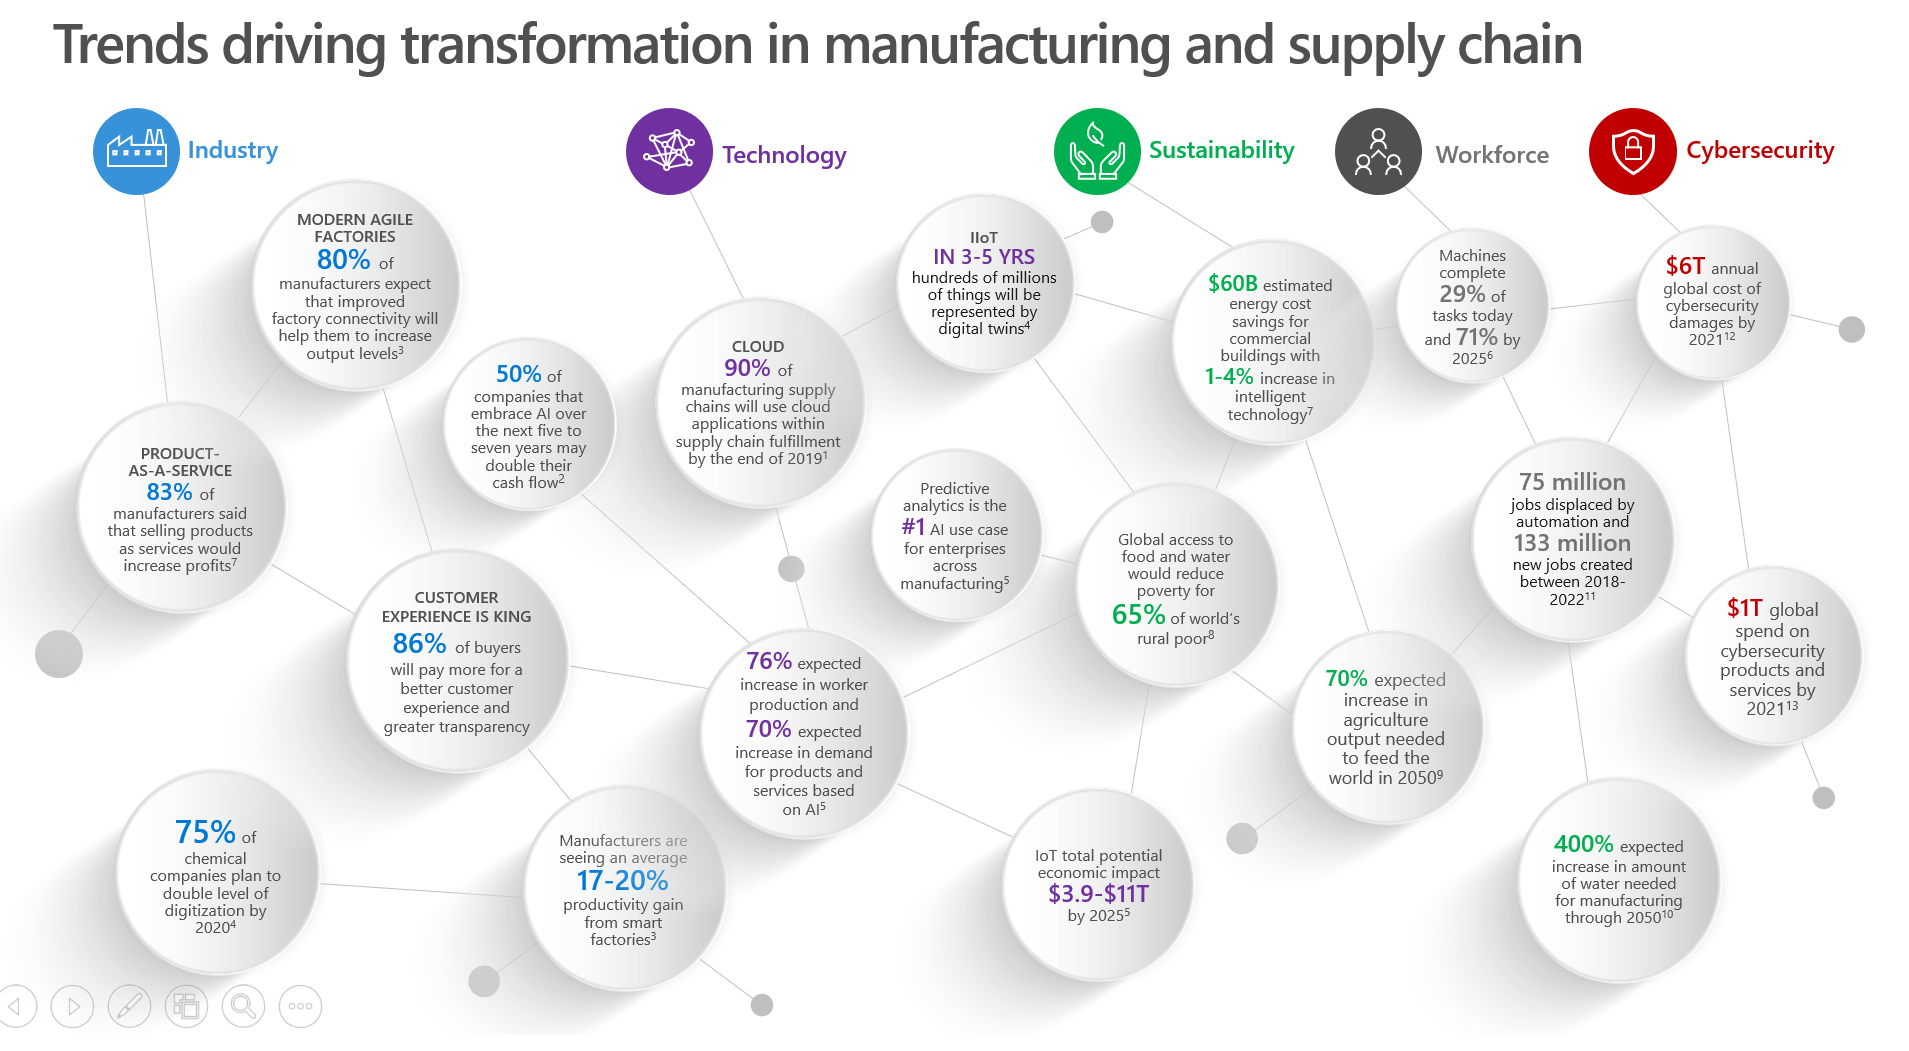 Microsoft - Trends driving transformation in manufacturing and supply chain